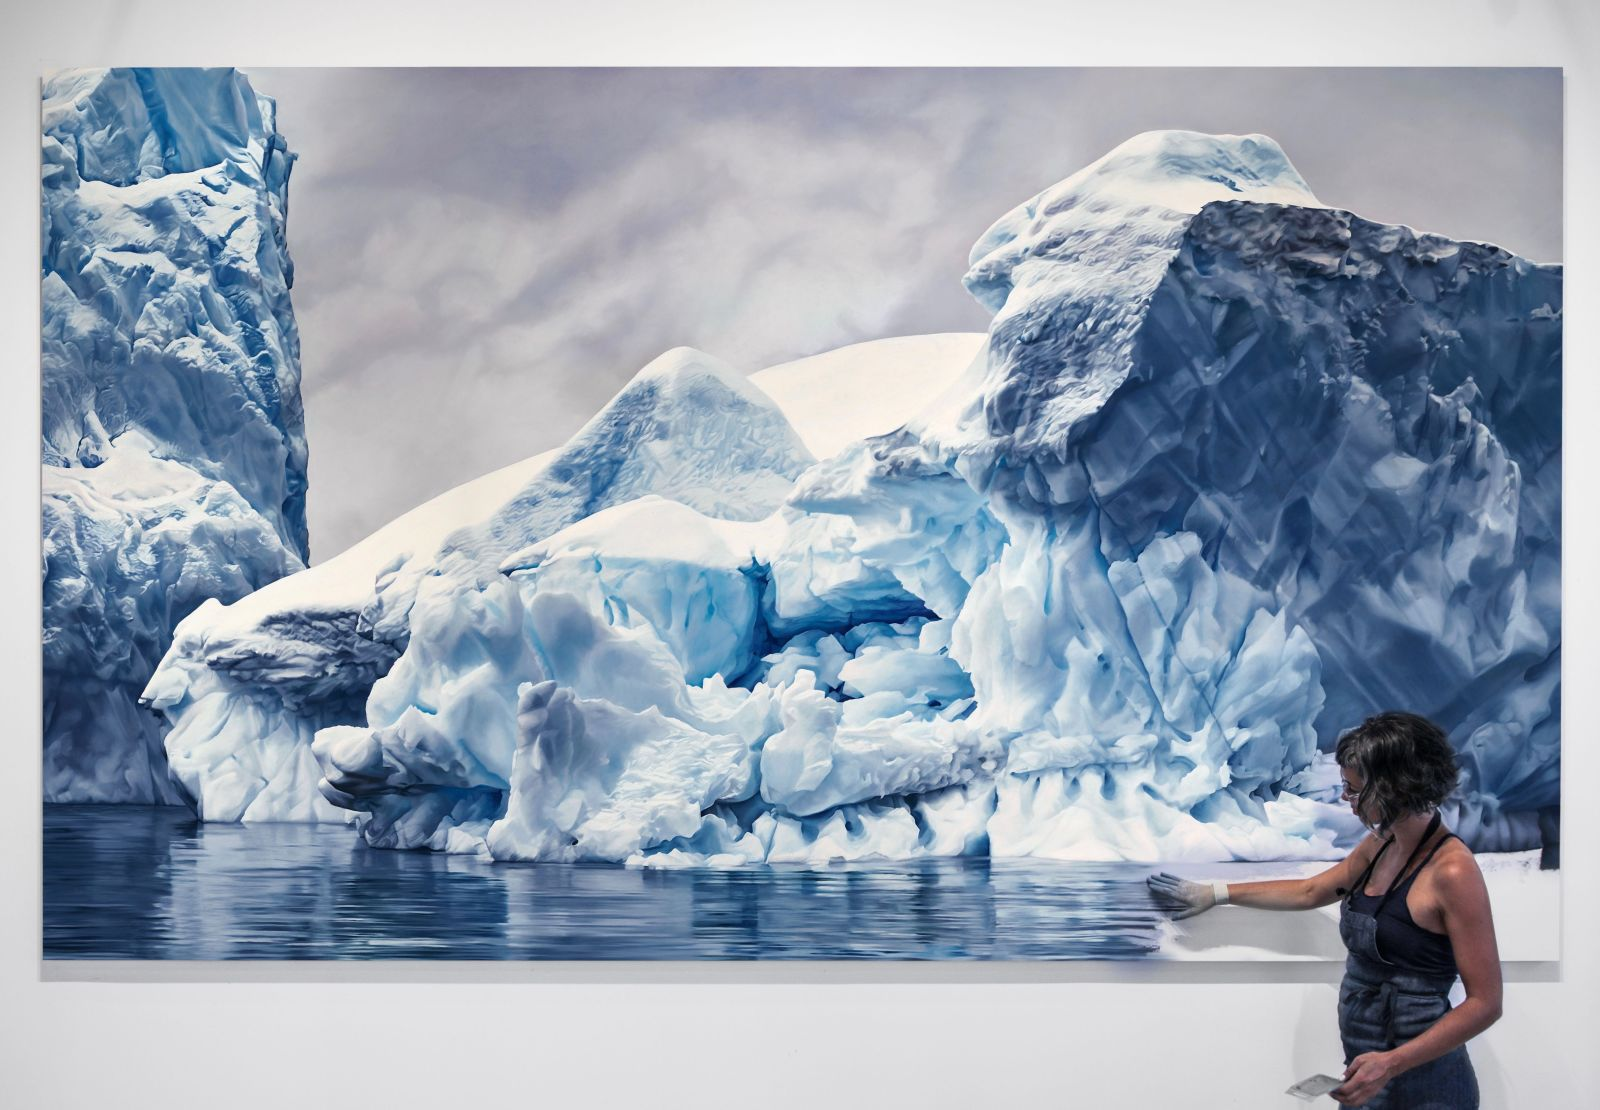 https://jezebel.com/women-artists-are-bringing-the-reality-of-climate-chang-1794710222